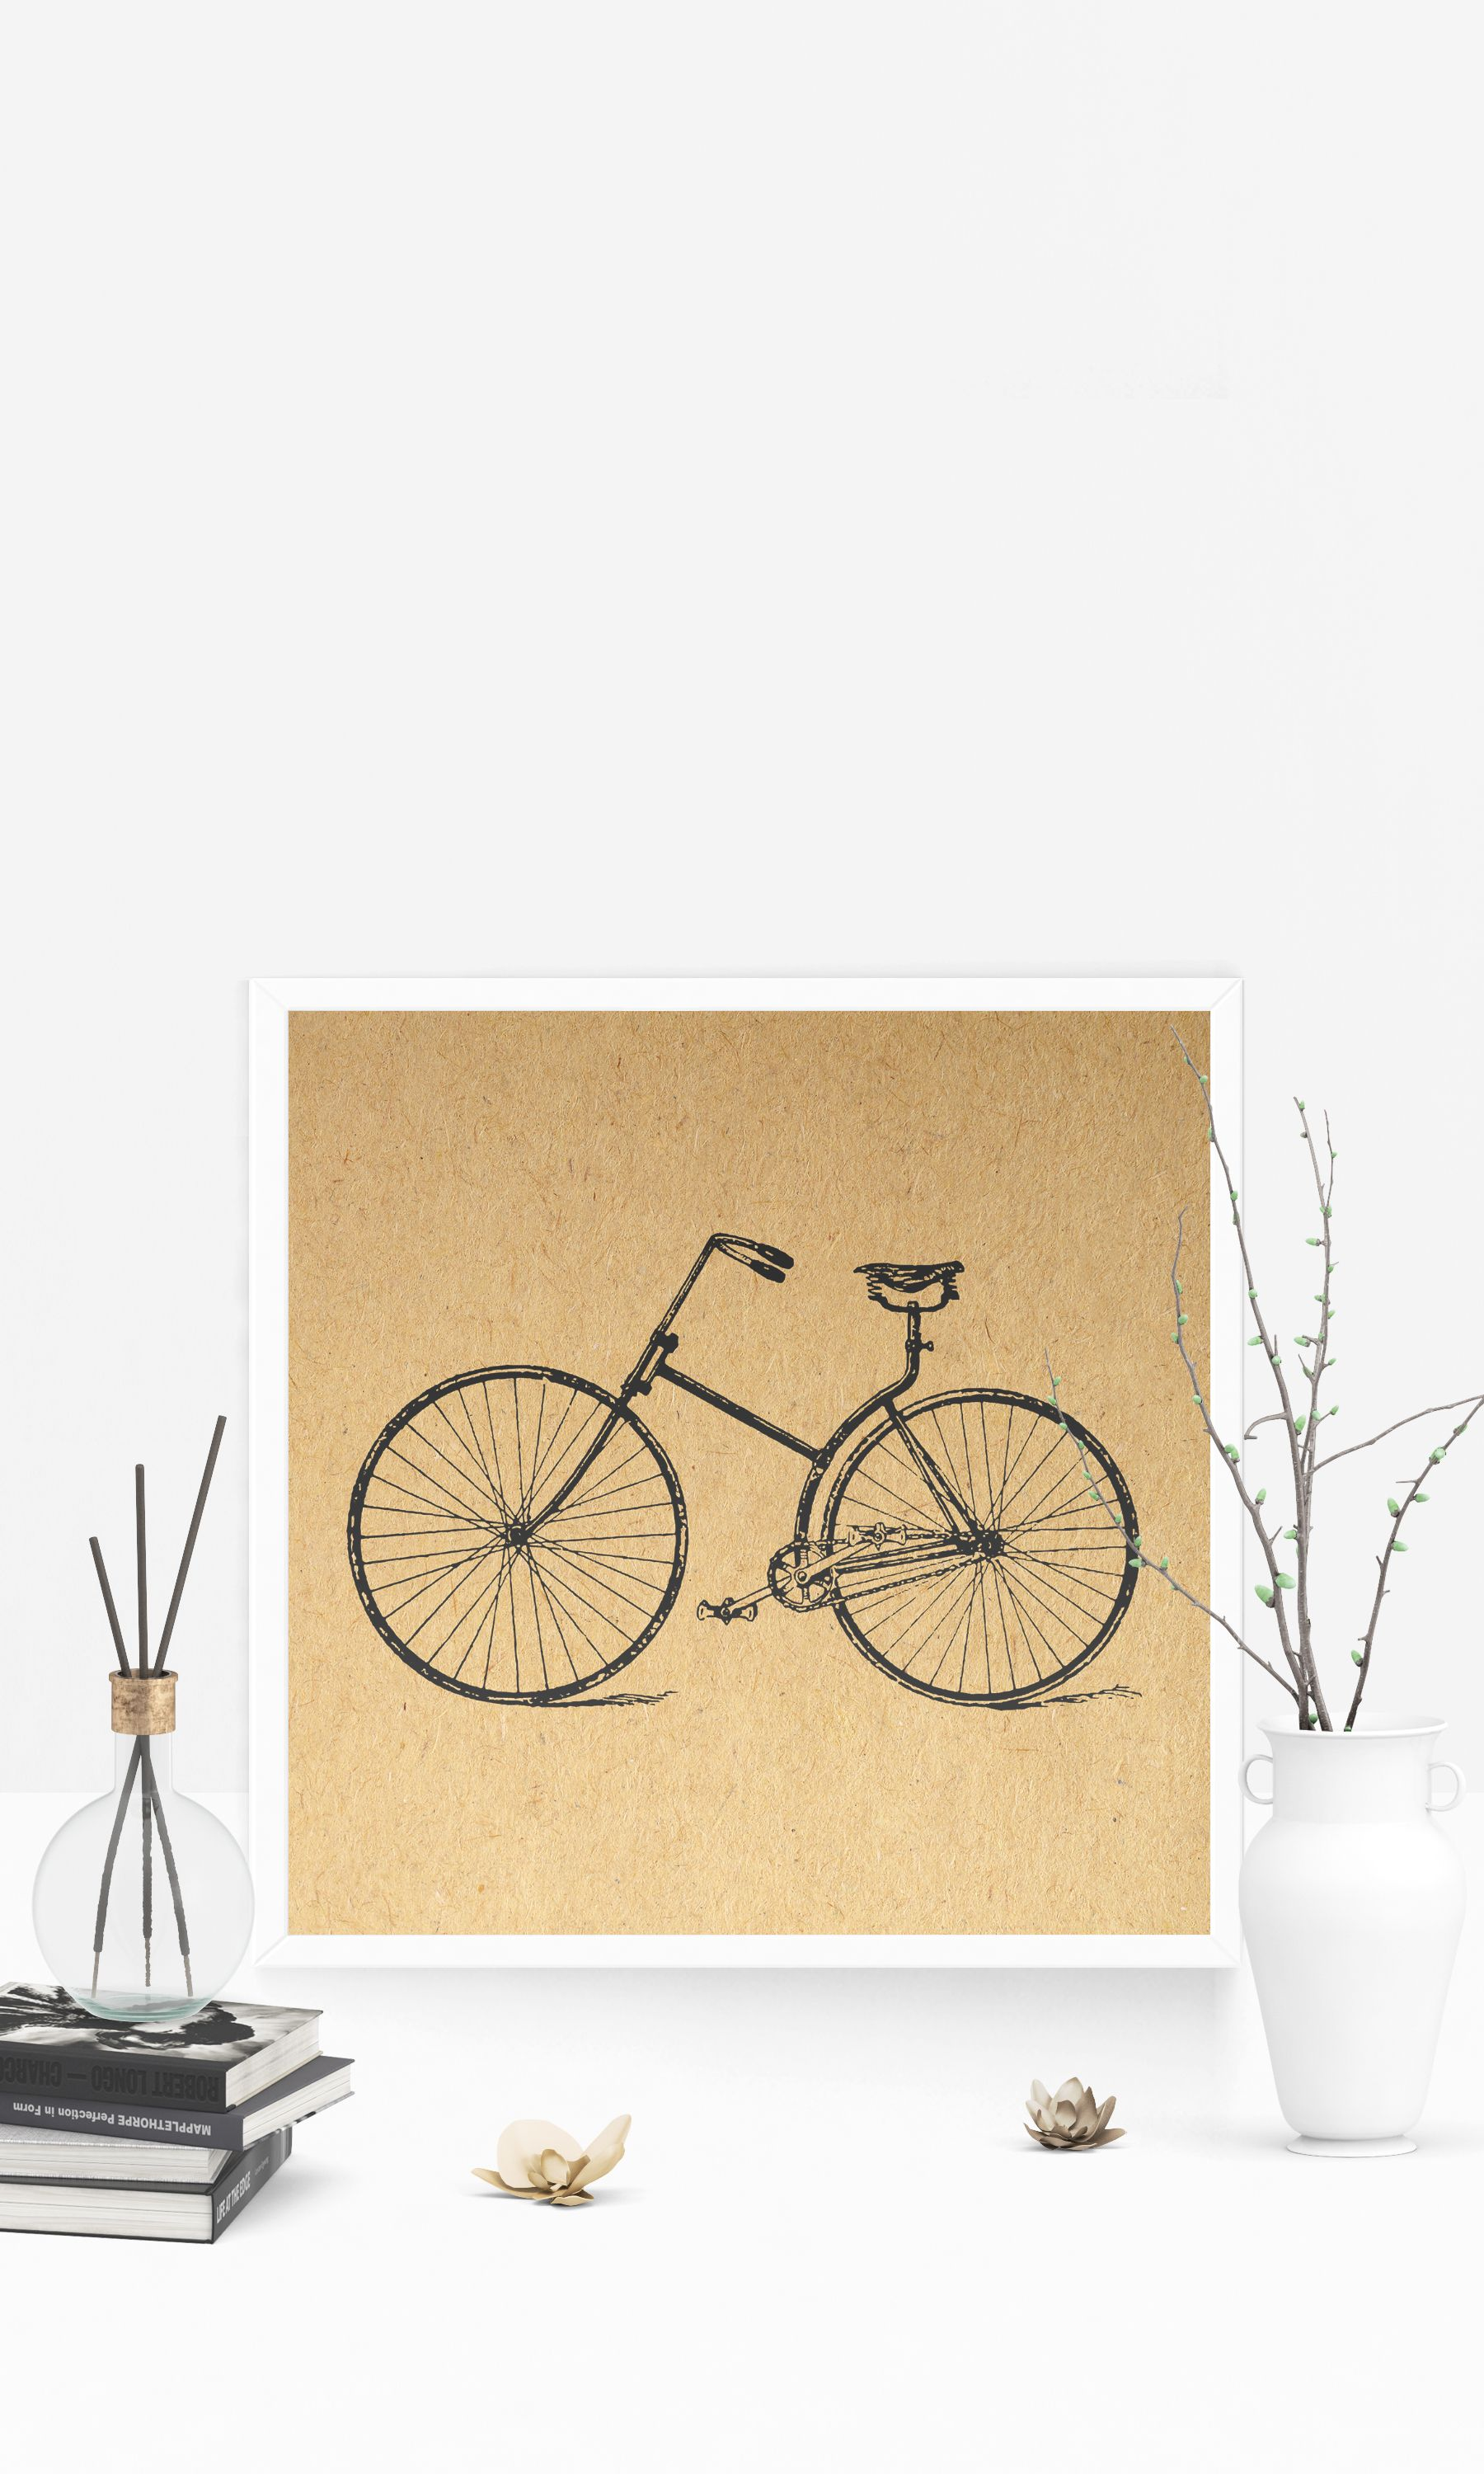 Vintage Bicycle Print with an Antique Bike Illustration Wall Art ...